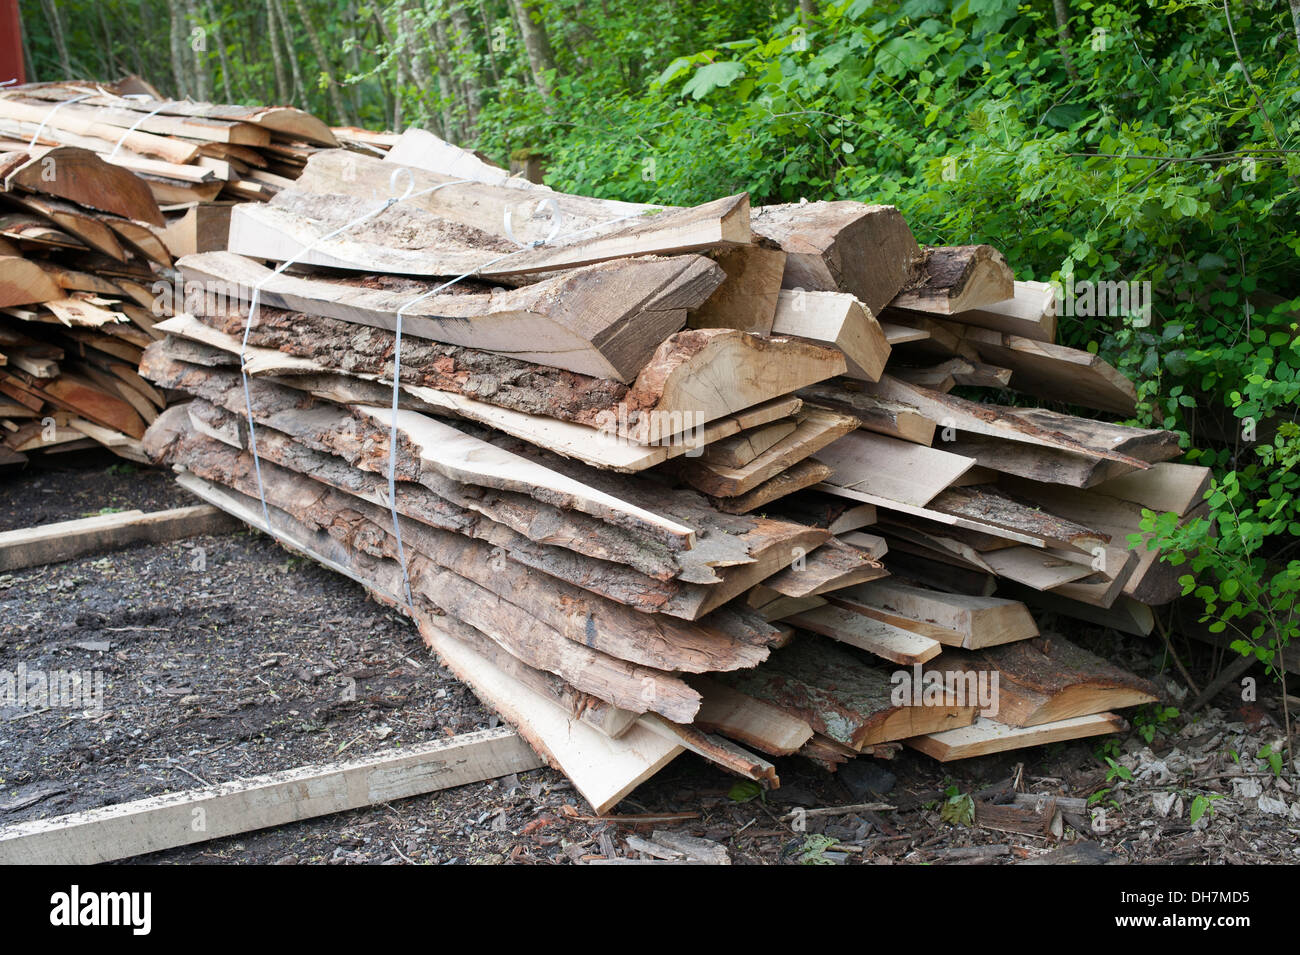 Rough Cut Planks of wood timber at sawmill saw mill - Stock Image